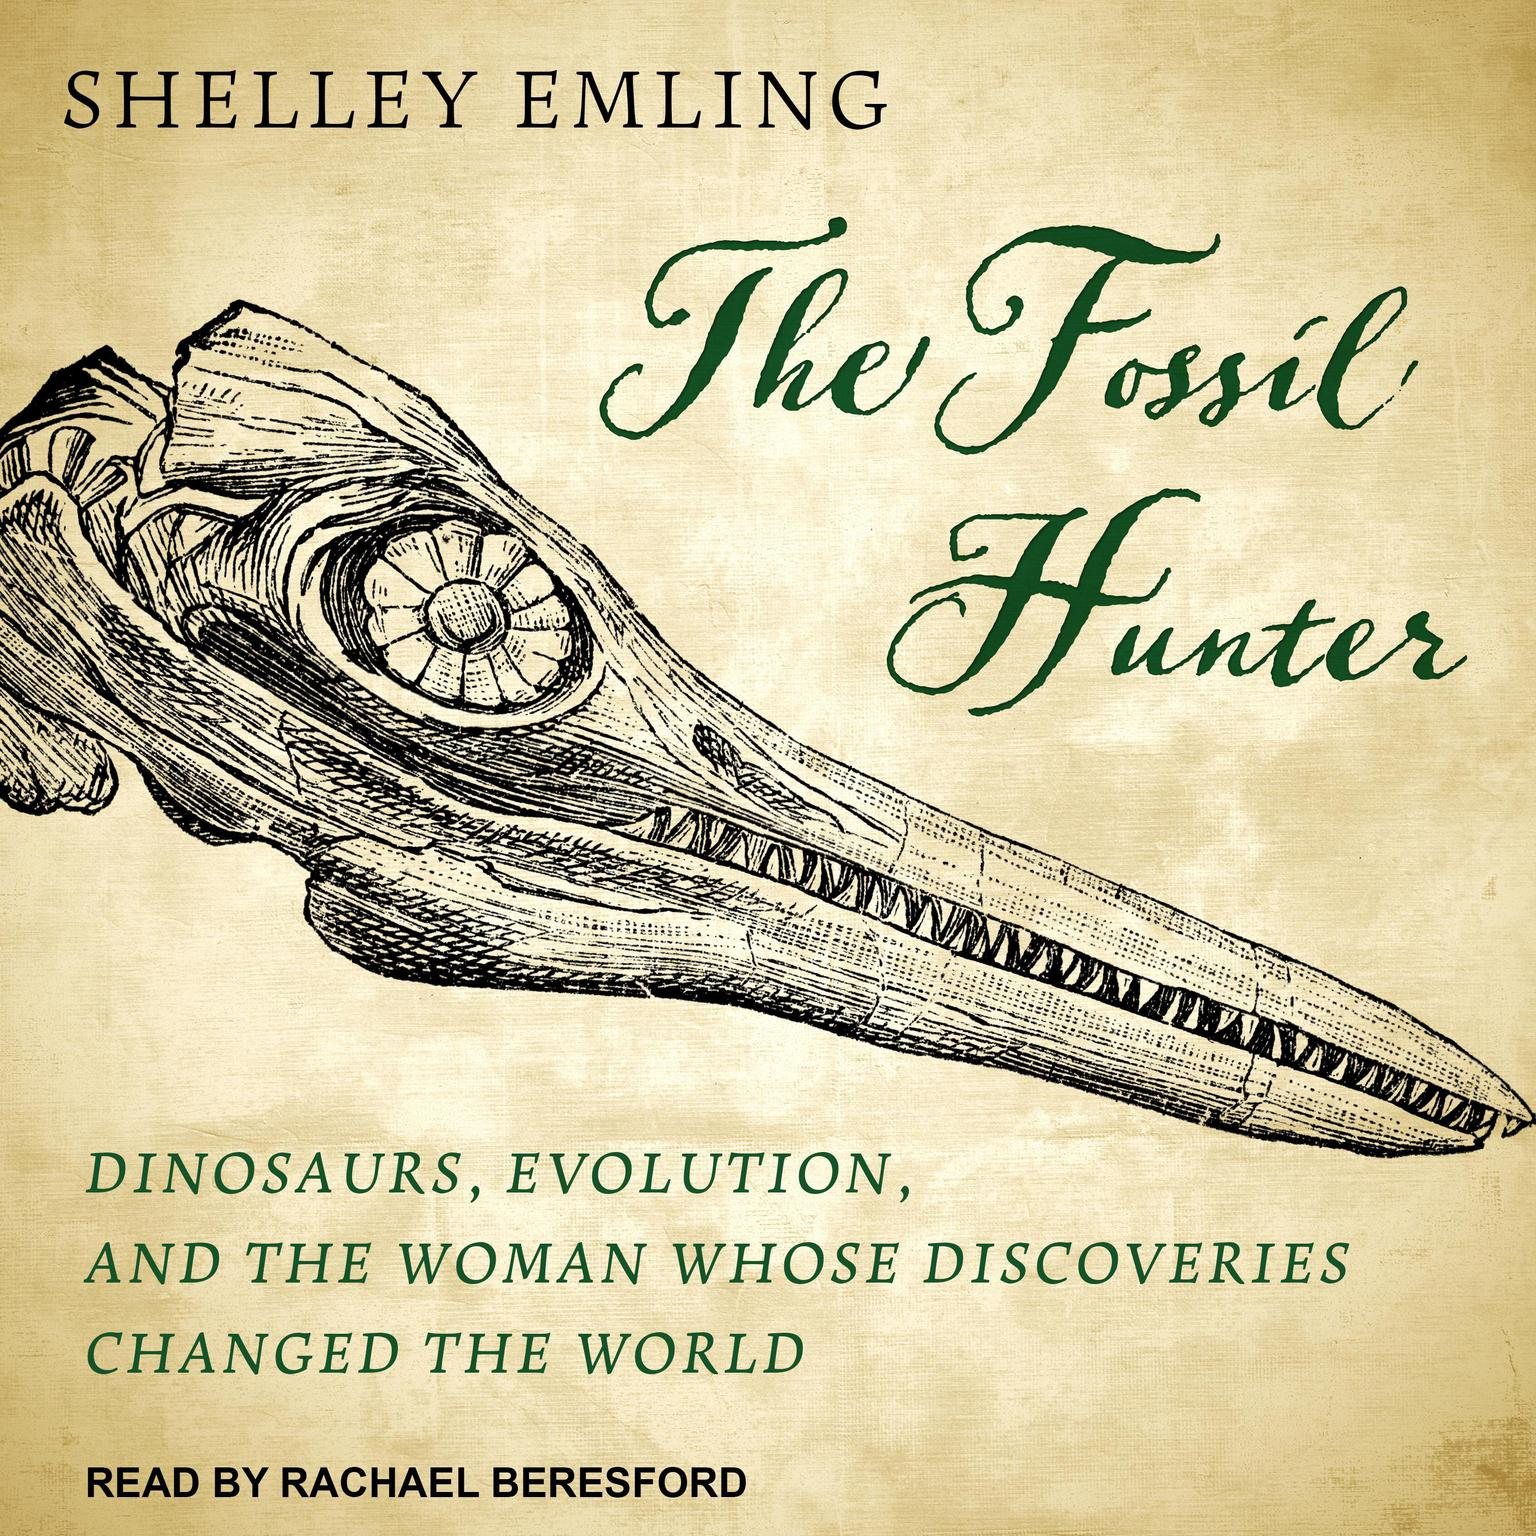 The Fossil Hunter: Dinosaurs, Evolution, and the Woman Whose Discoveries Changed the World Audiobook, by Shelley Emling